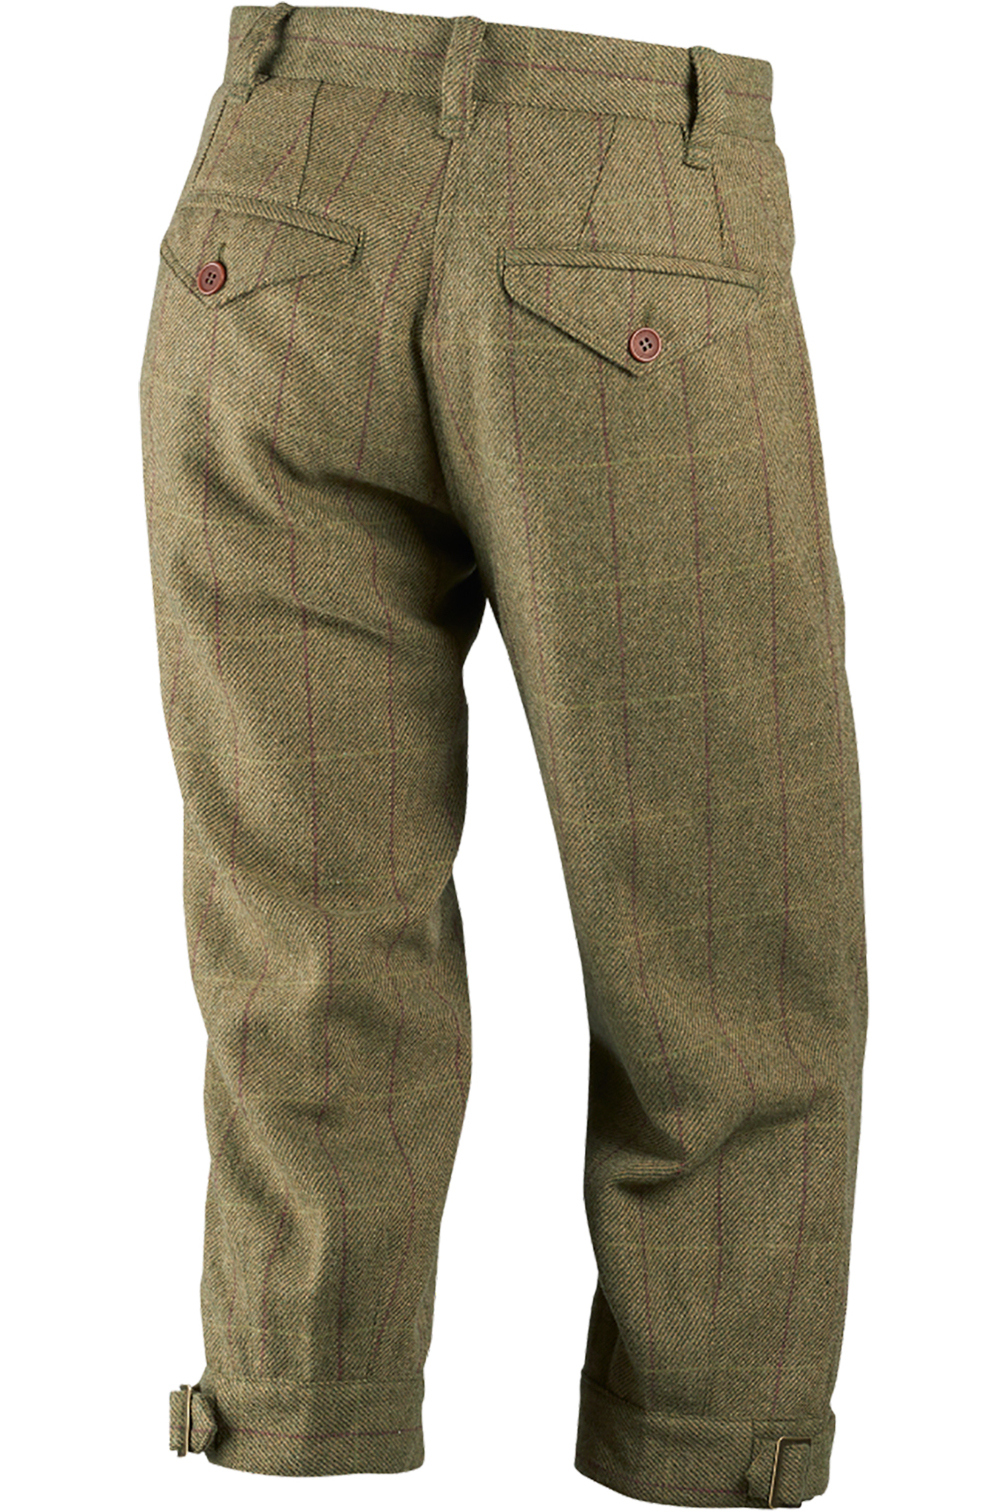 eee8a797df82a Seeland Womens Ragley Shooting Breeks | Trousers | Peg and Thread ...